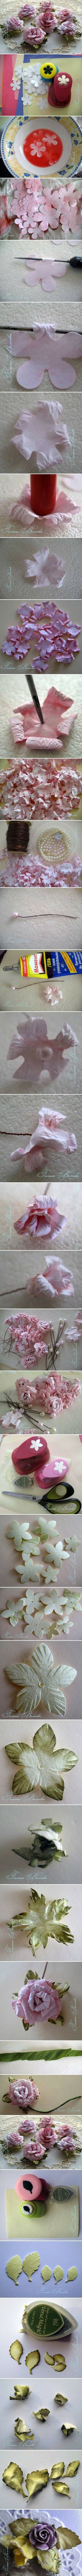 How to make Curly Paper Rosettes step by step DIY instructions 400x12585 How to make Curly Paper Rosettes step by step DIY instructions